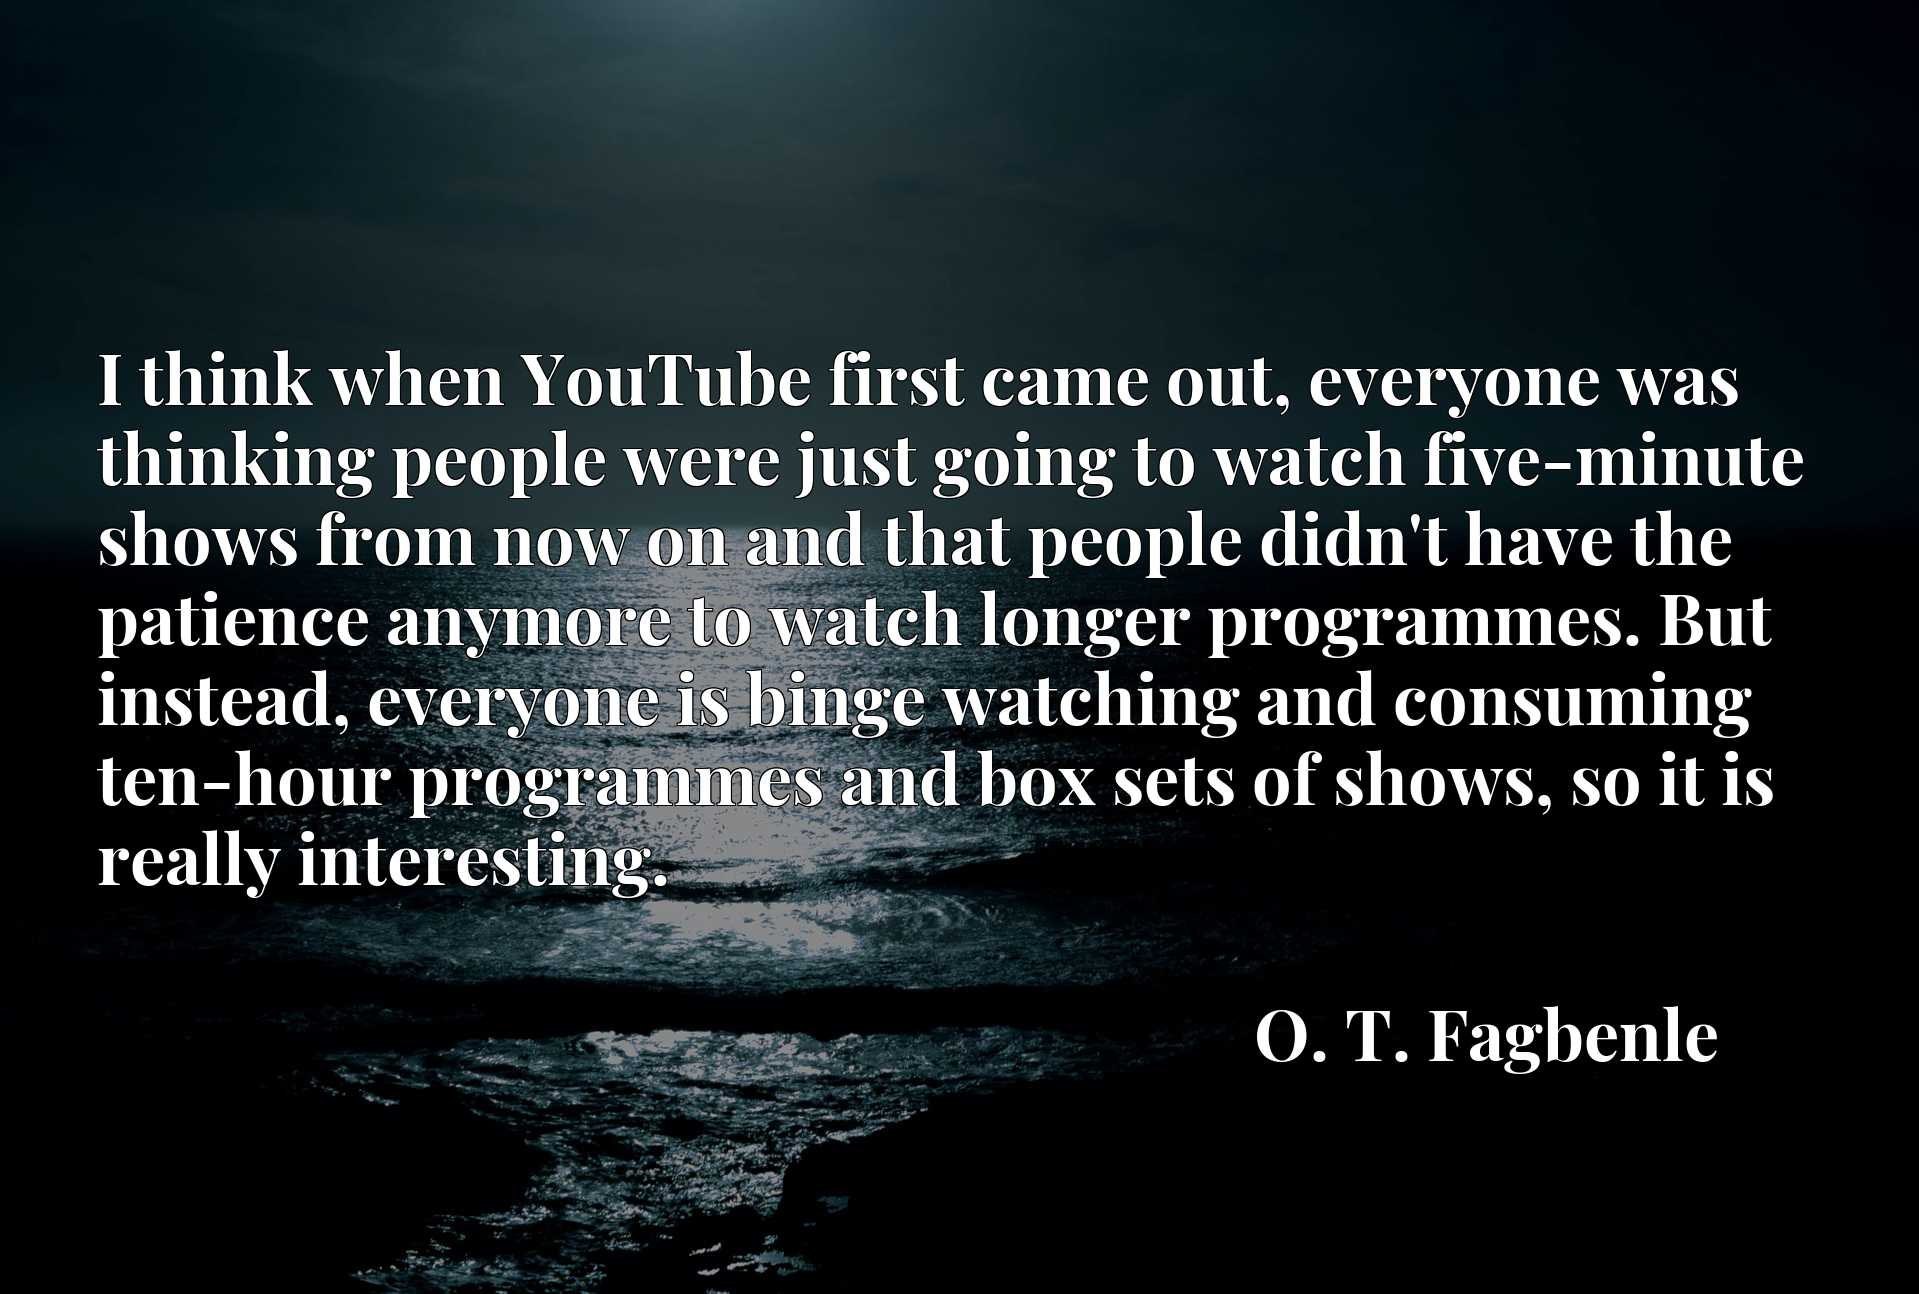 I think when YouTube first came out, everyone was thinking people were just going to watch five-minute shows from now on and that people didn't have the patience anymore to watch longer programmes. But instead, everyone is binge watching and consuming ten-hour programmes and box sets of shows, so it is really interesting.